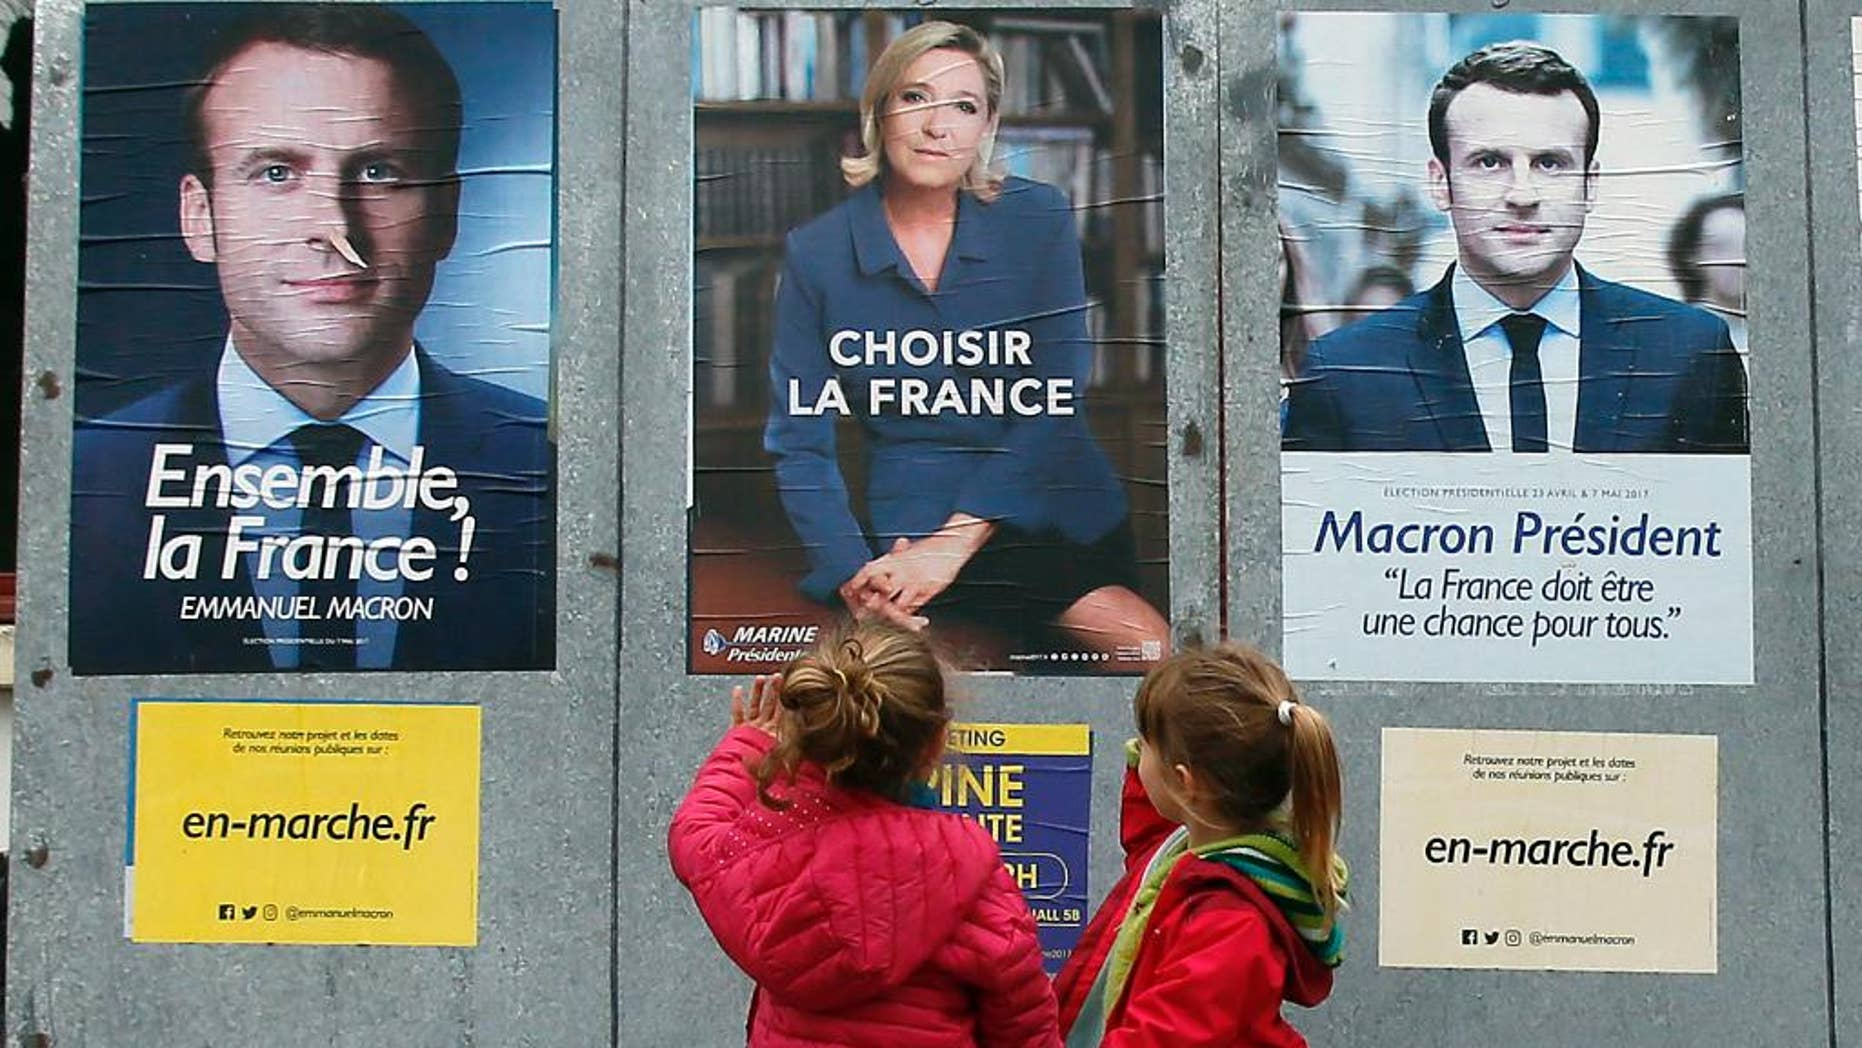 Children walk past election campaign posters for French centrist presidential candidate Emmanuel Macron and far-right candidate Marine Le Pen, in Osses, southwestern France, Friday May 5, 2017. France will vote on Sunday May 7 in the second round of the presidential election. (AP Photo/Bob Edme)